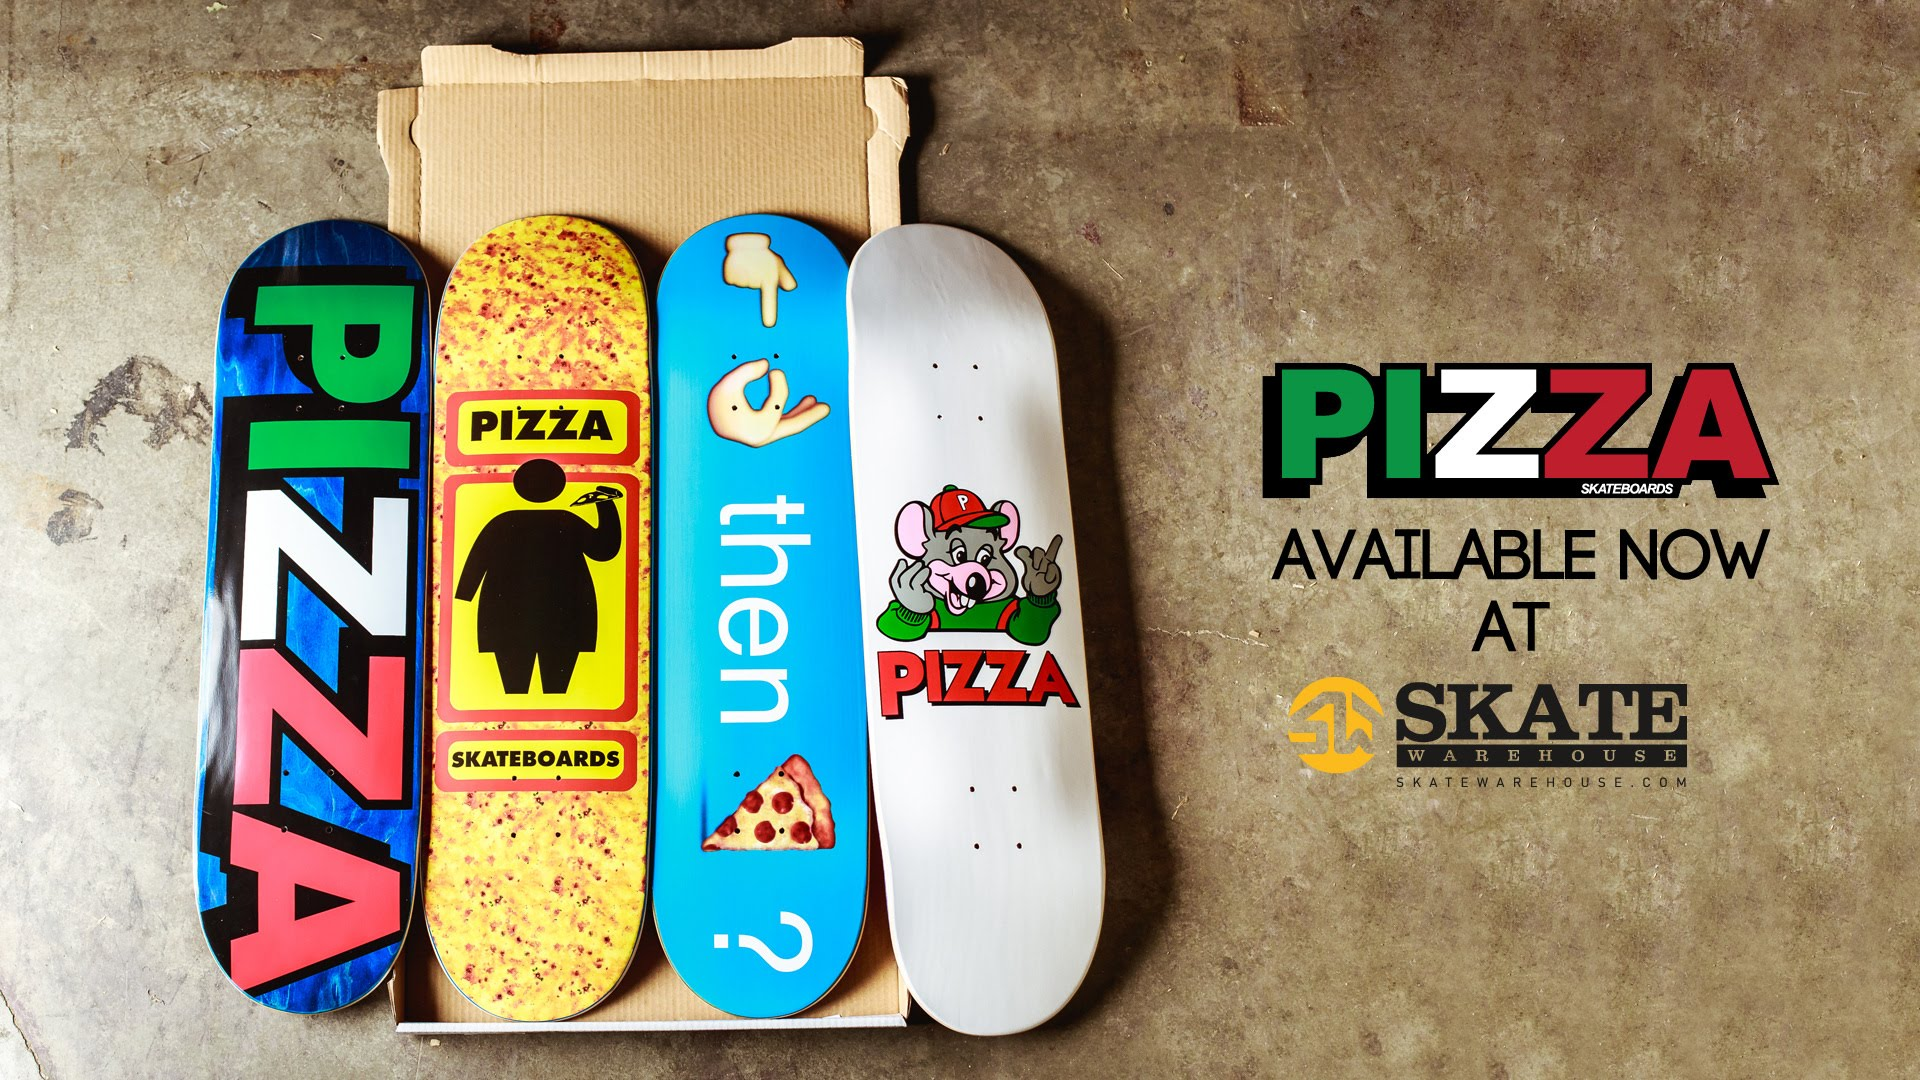 Skate Warehouse Delivers Pizza Skateboards!